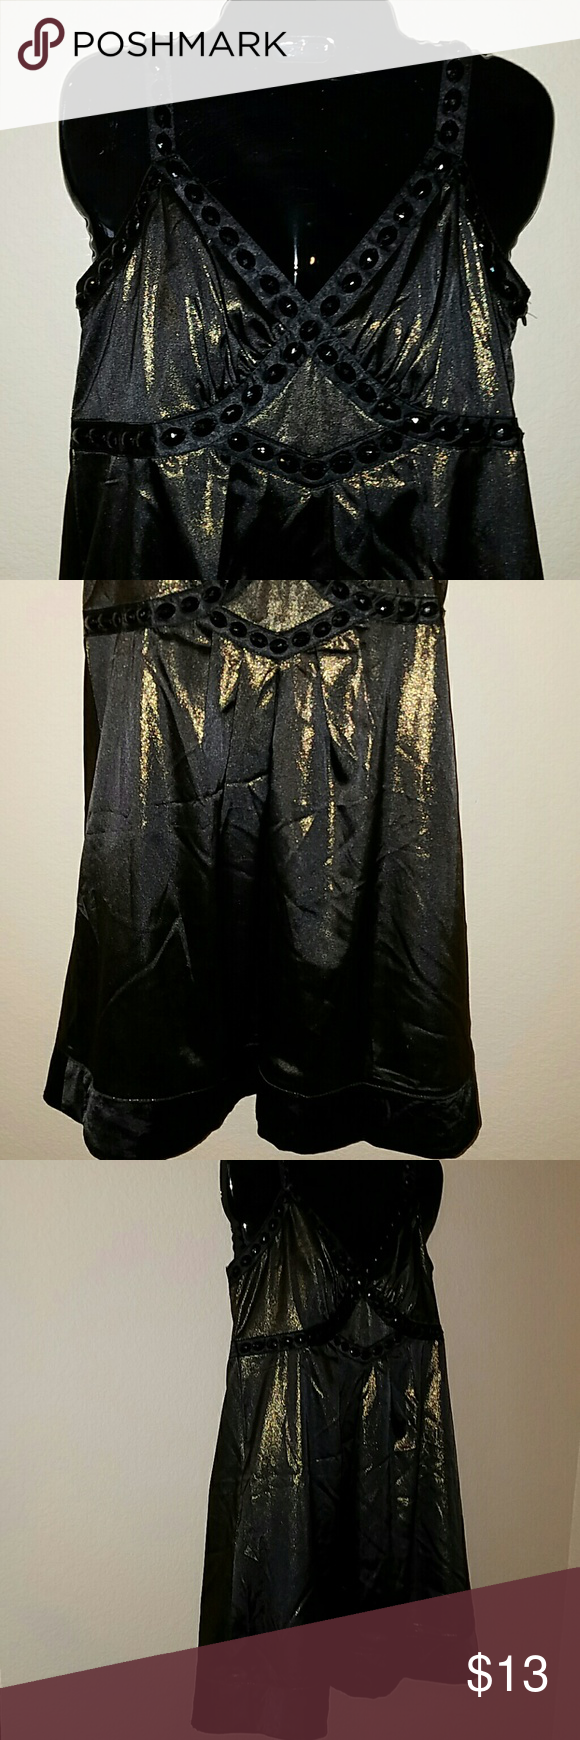 NWT Sexy Metallic Tunic Pretty shiny top with beading. Adjustable straps. Zipper on the side.  Brand new. Great for the holidays or new years eve! Tops